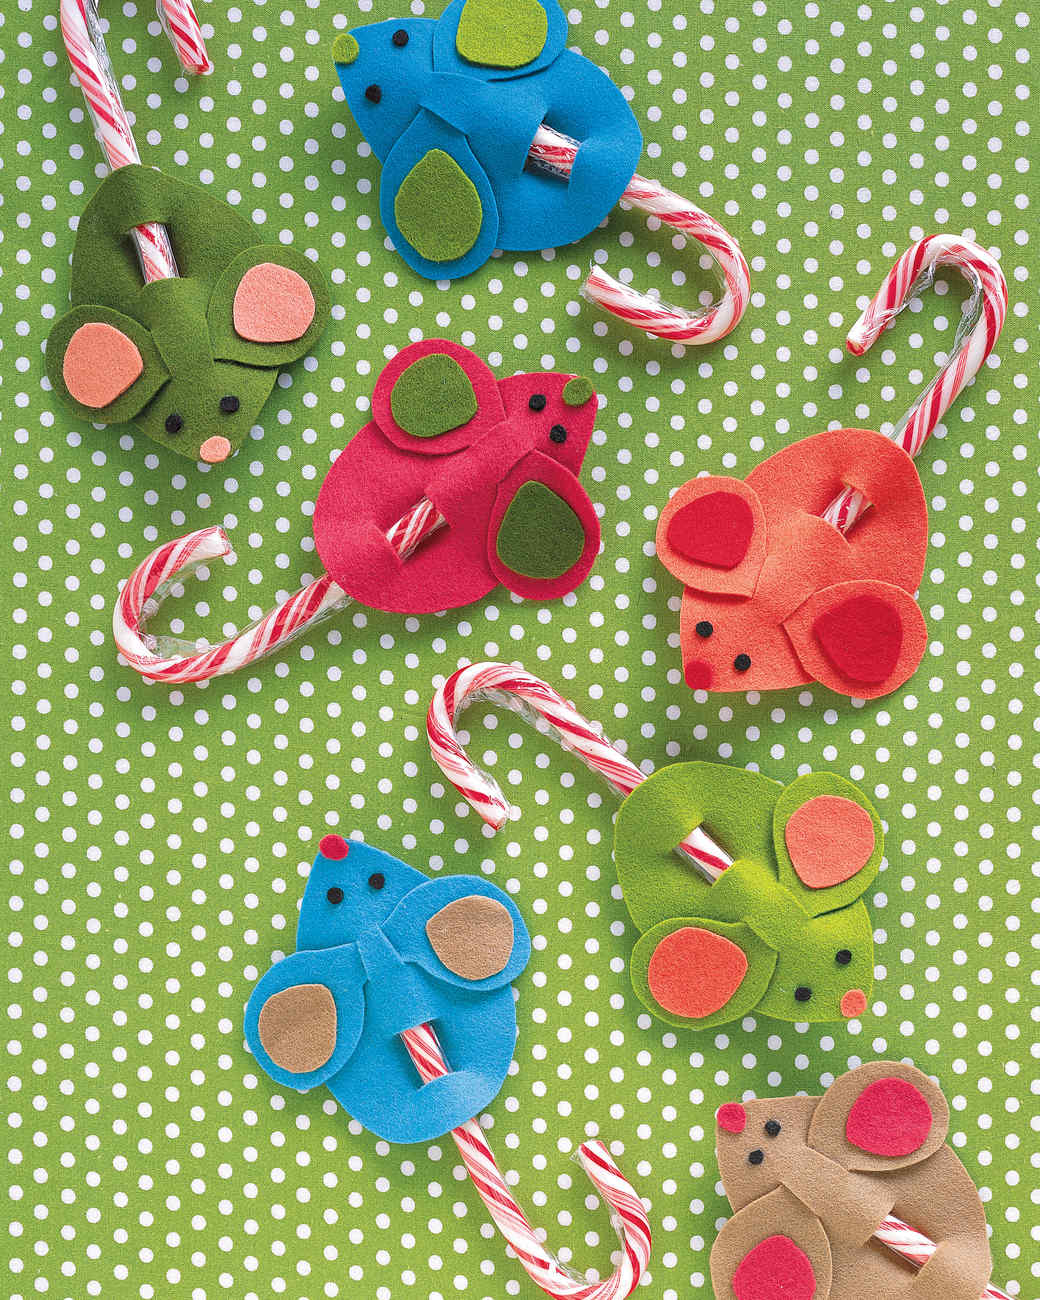 17 Affordable Christmas Crafts For The Whole Family Martha Stewart